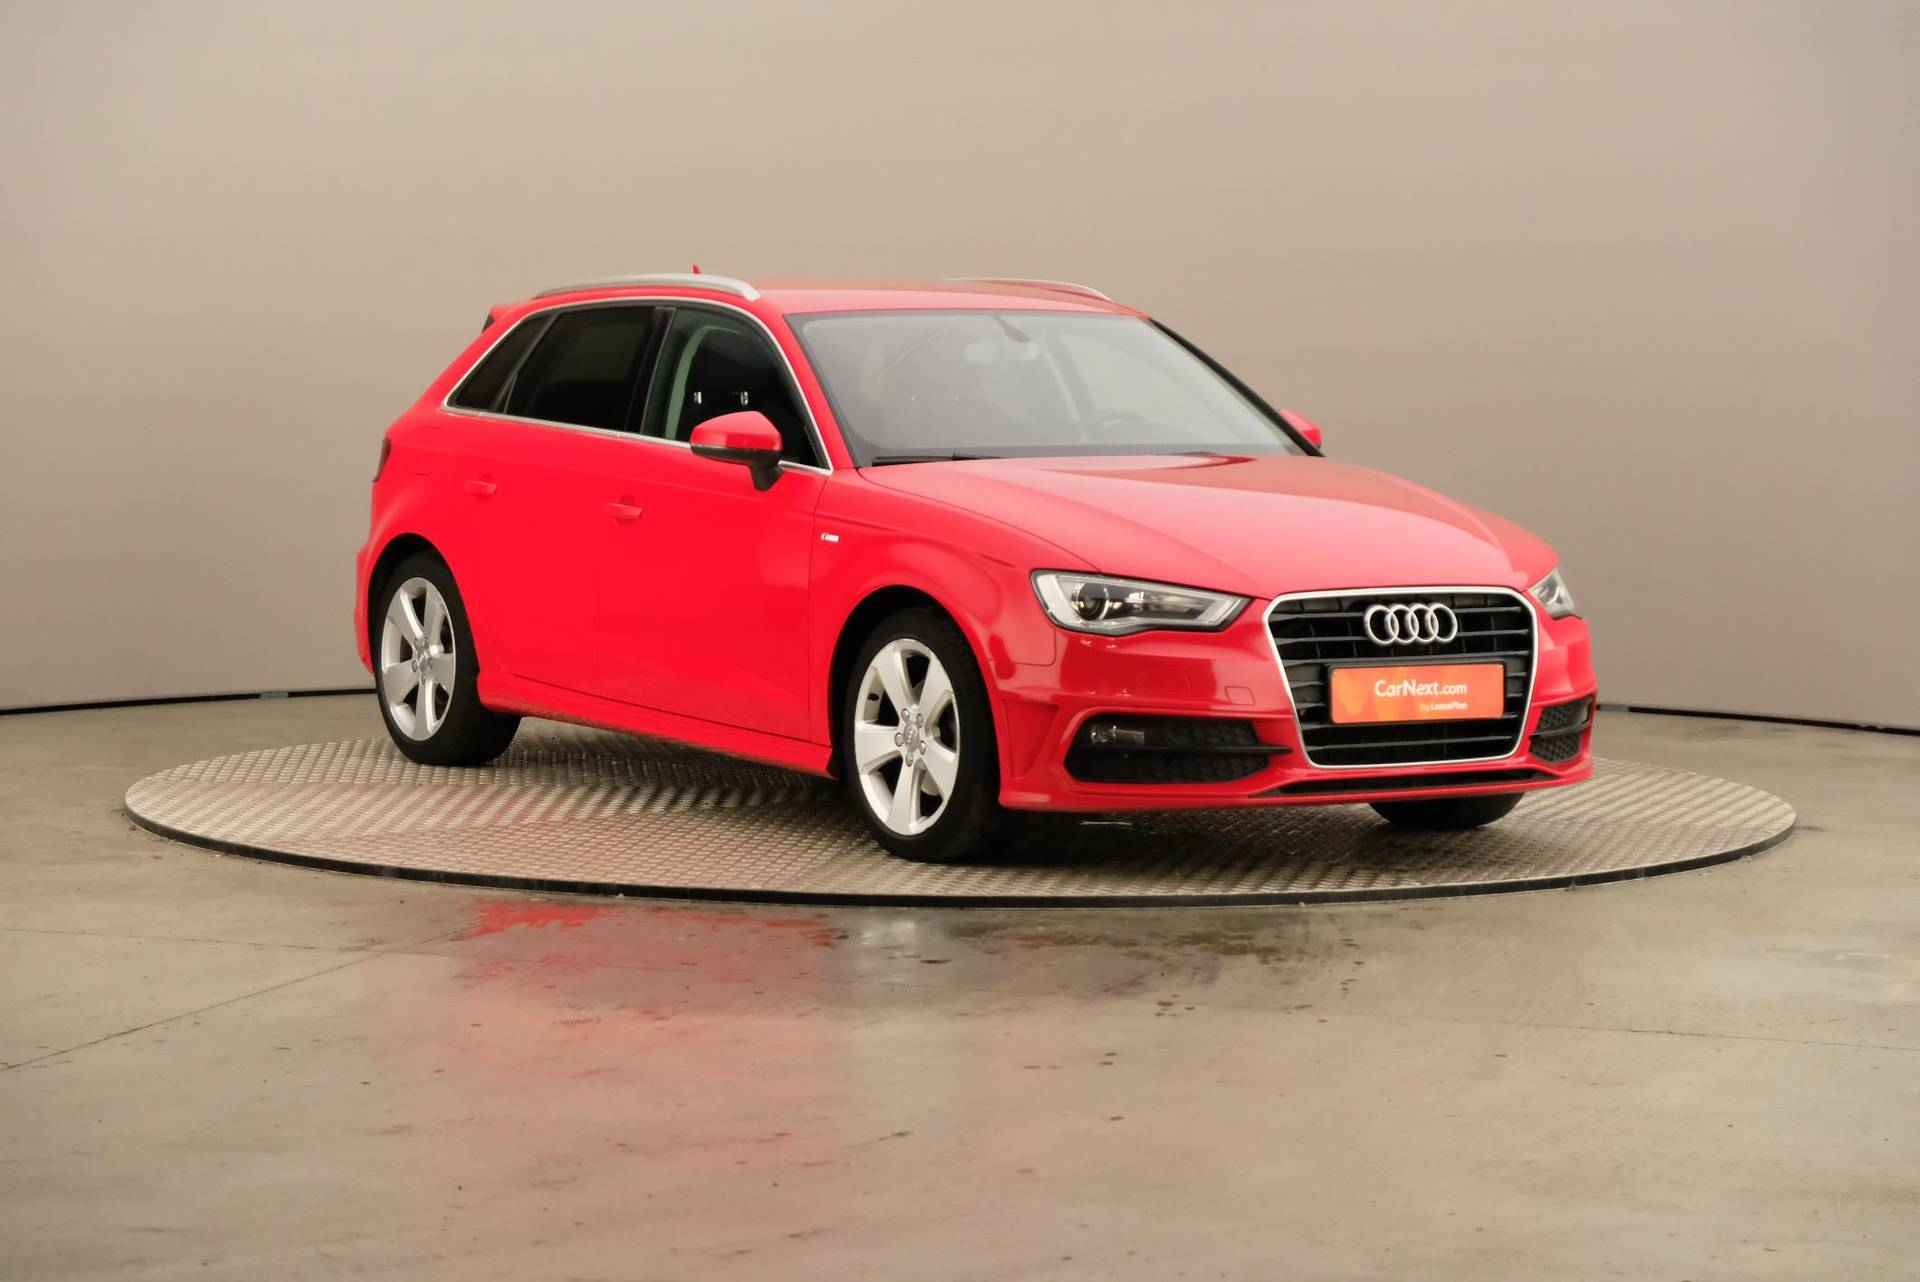 Audi A3 1.6 TDi Ambition PACK SPORT DESIGN XENON GPS PDC CRUISE CONTROL, 360-image28